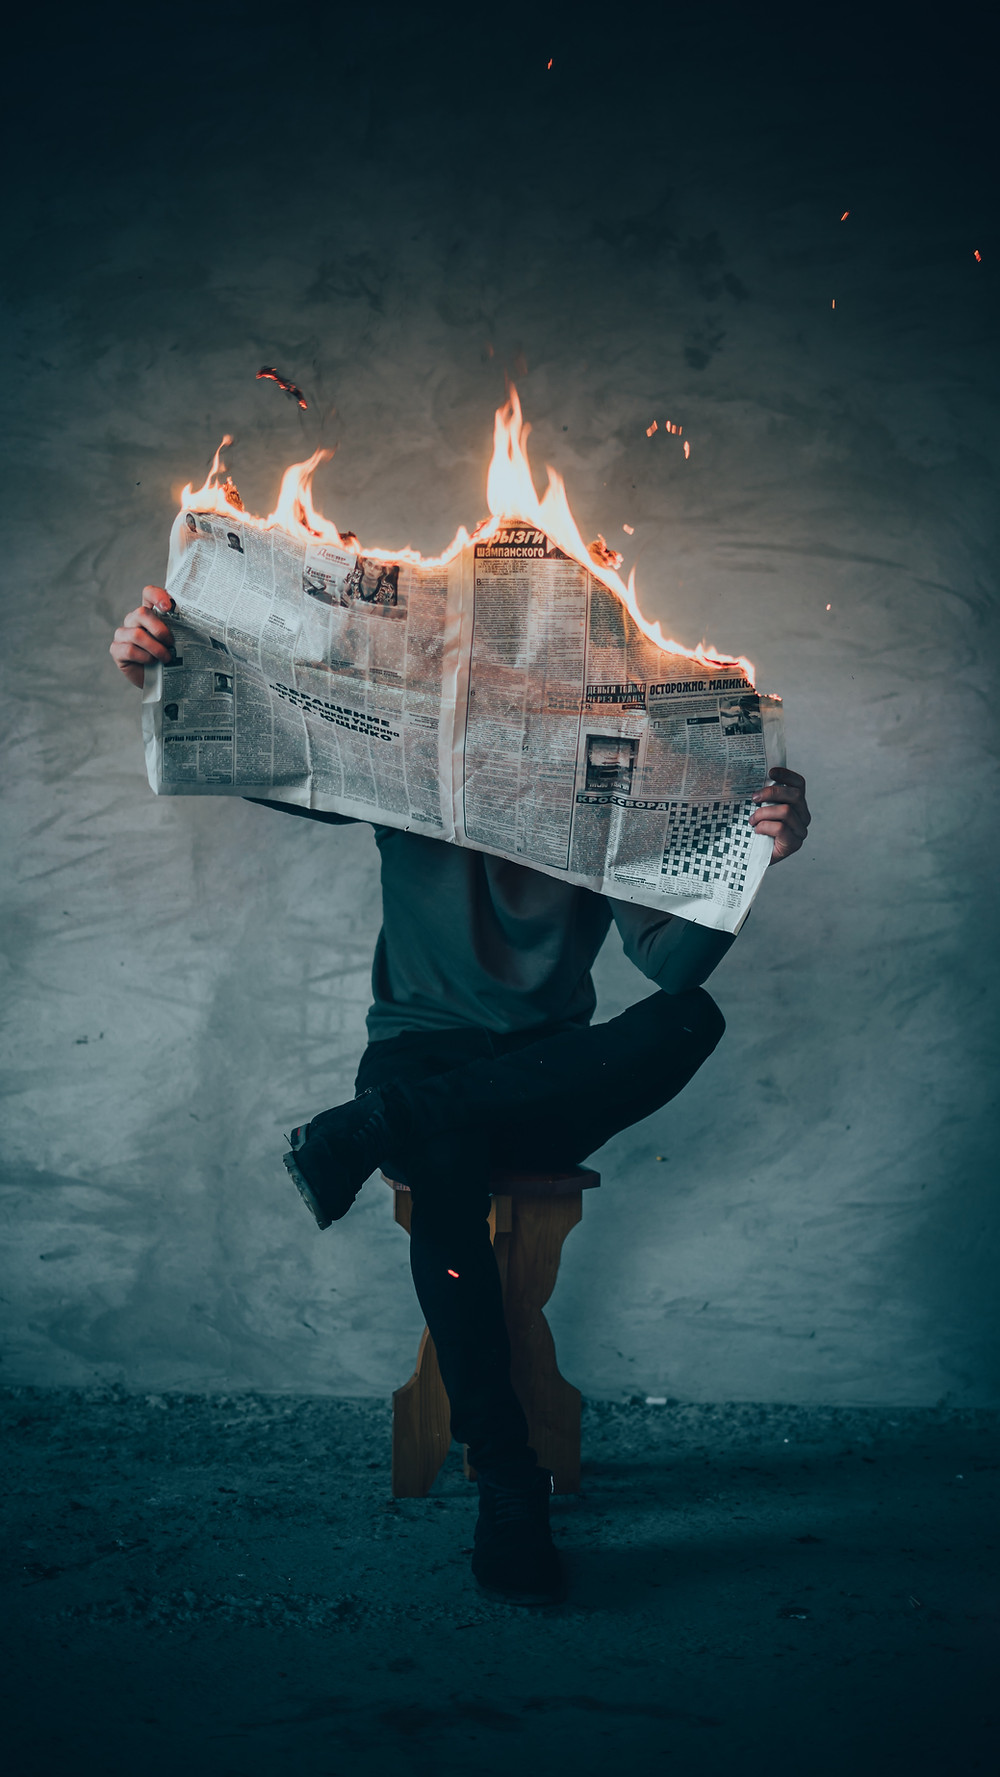 A person holds a newspaper as if to read it, but it's on fire.